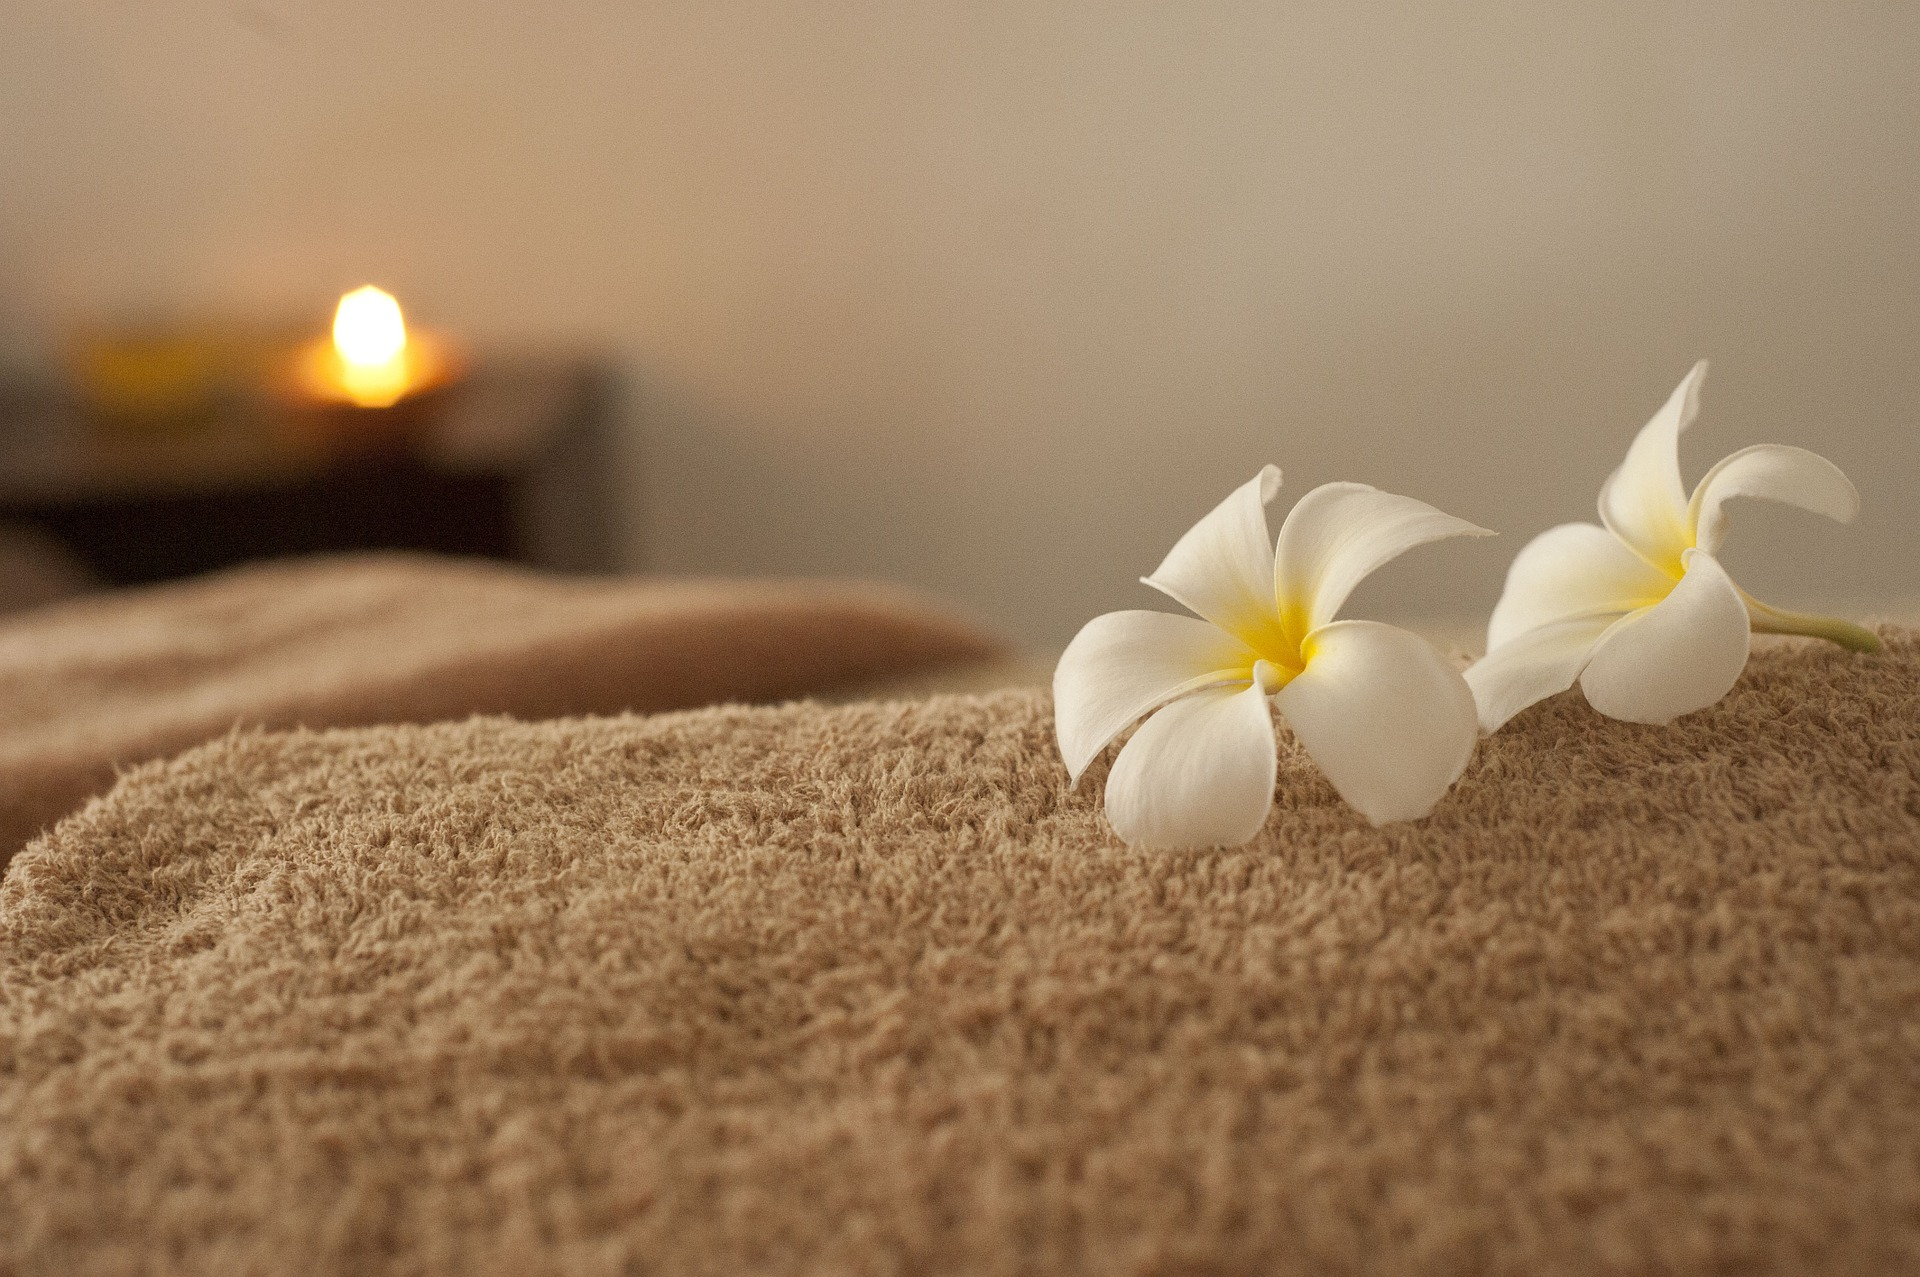 relaxation-686392_1920